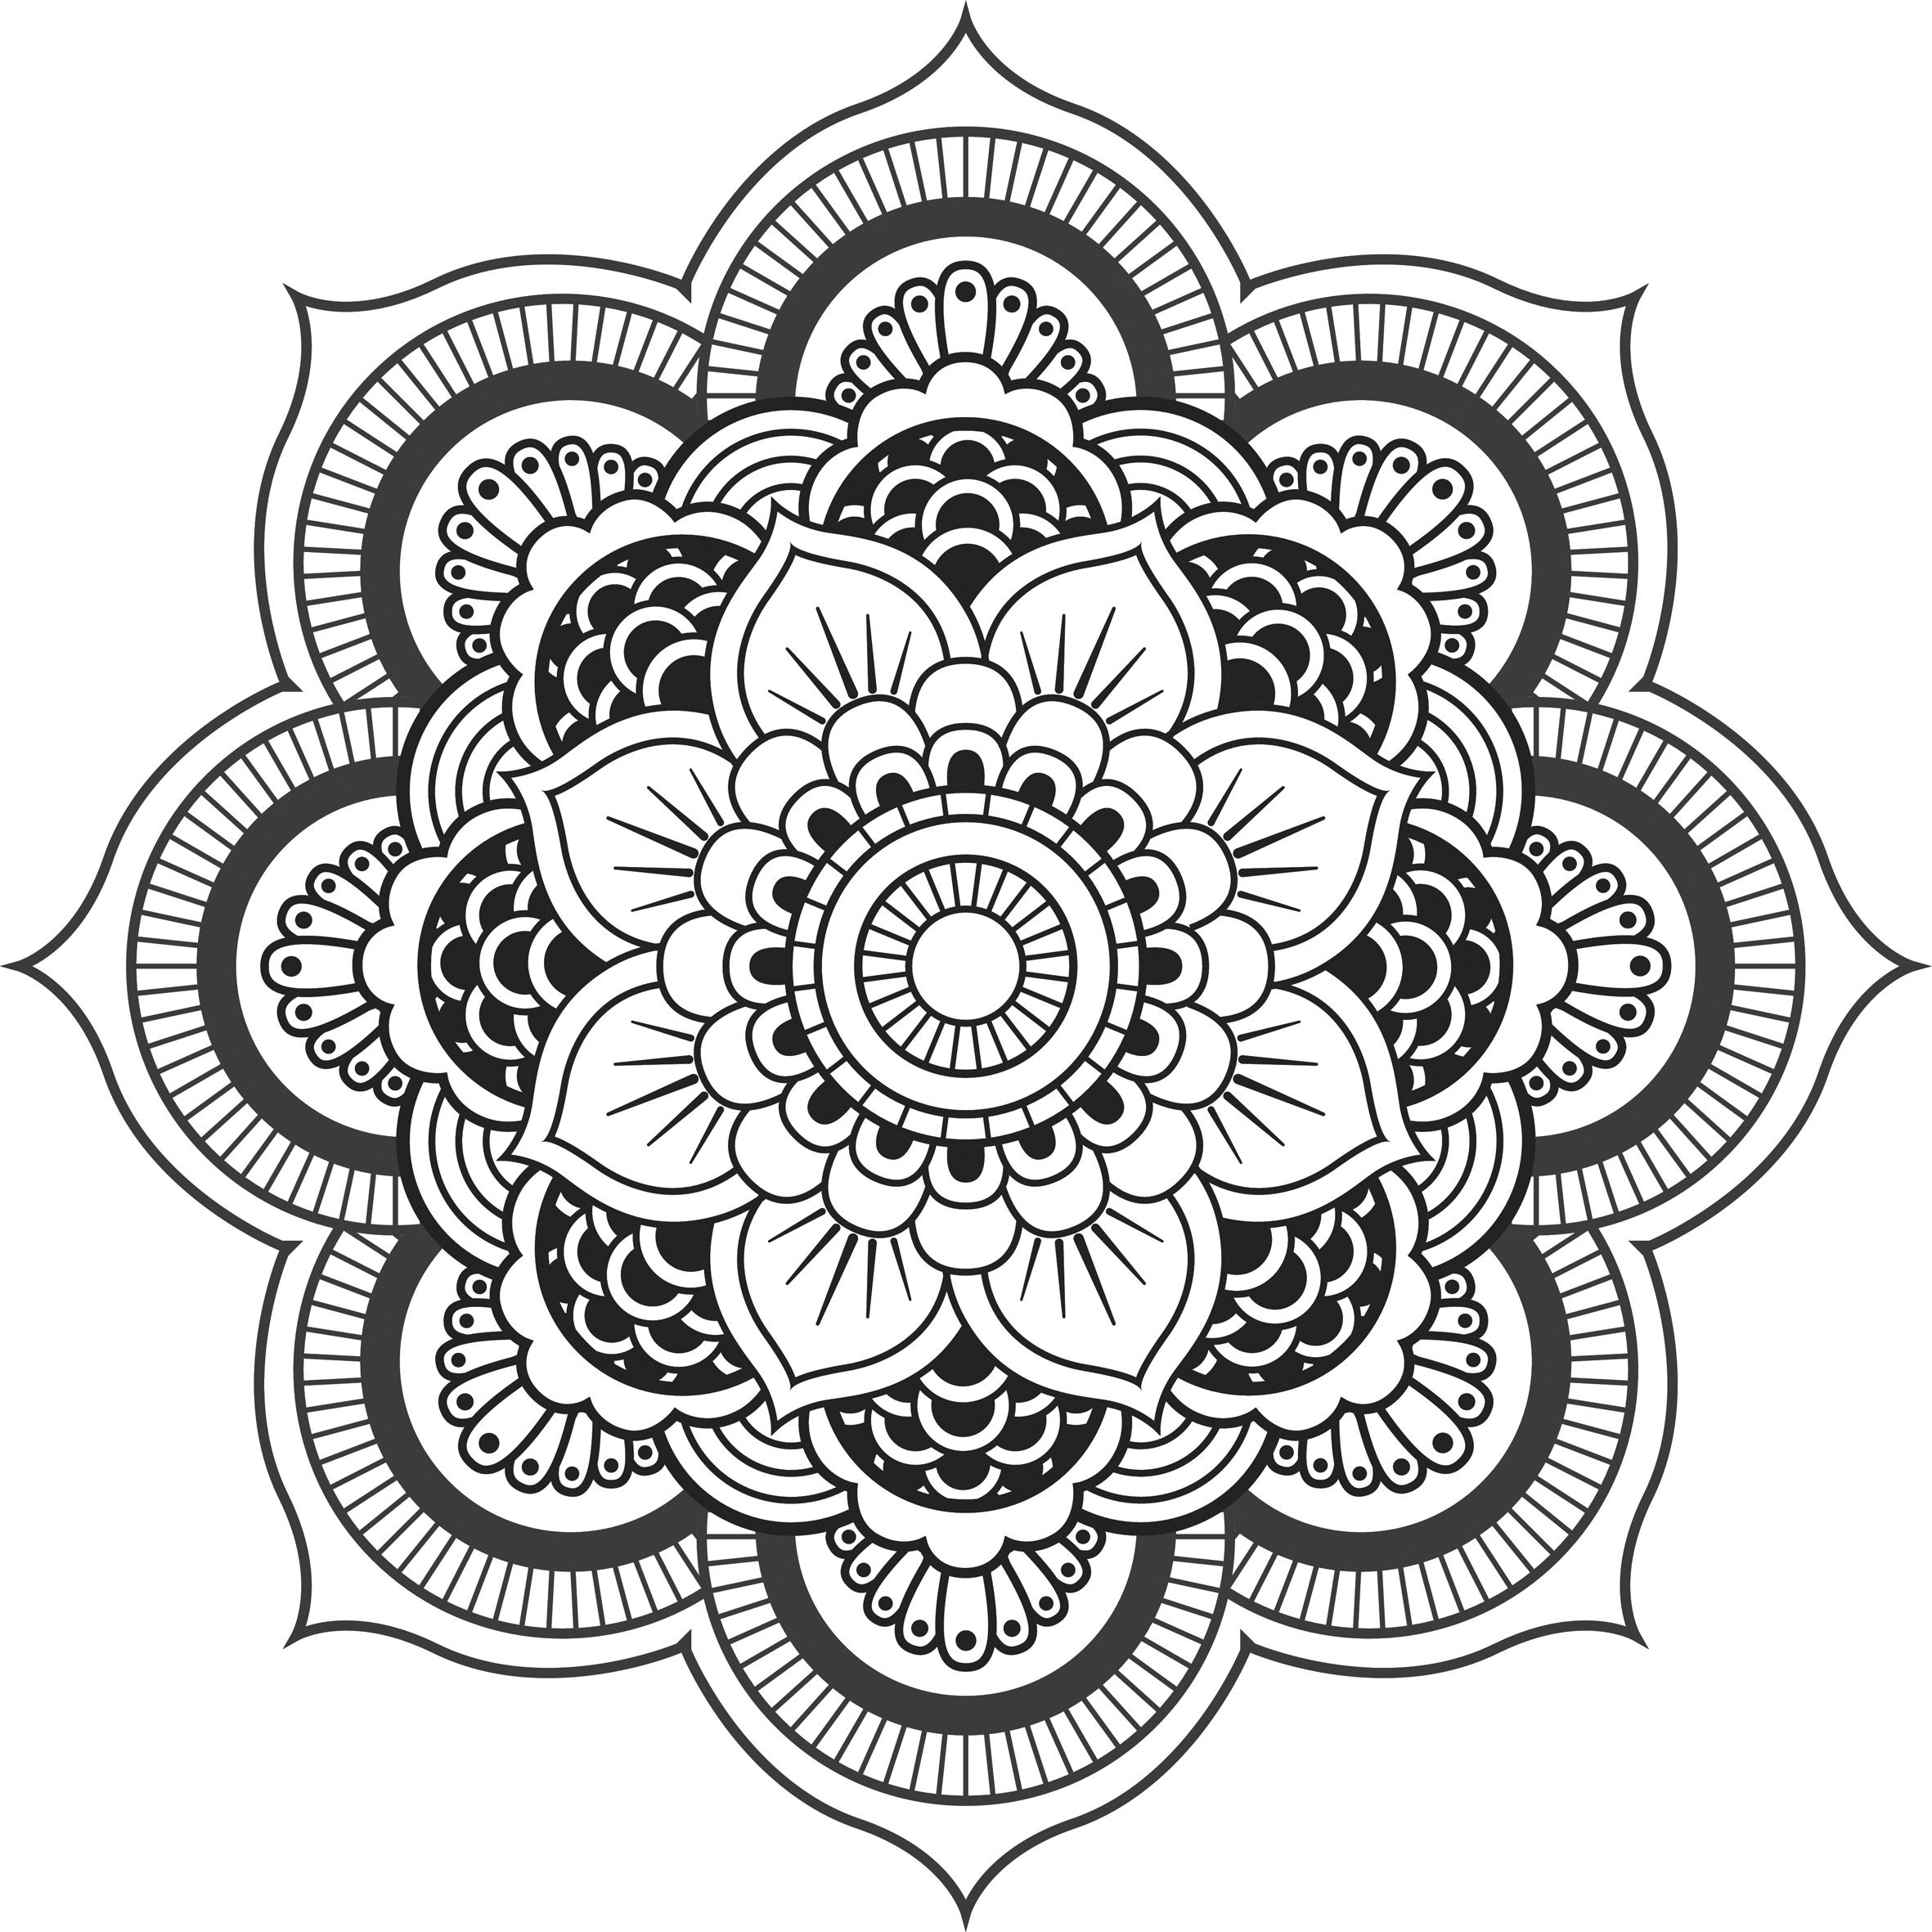 МАНДАЛЫ | Arabesque | Pinterest | Mandala